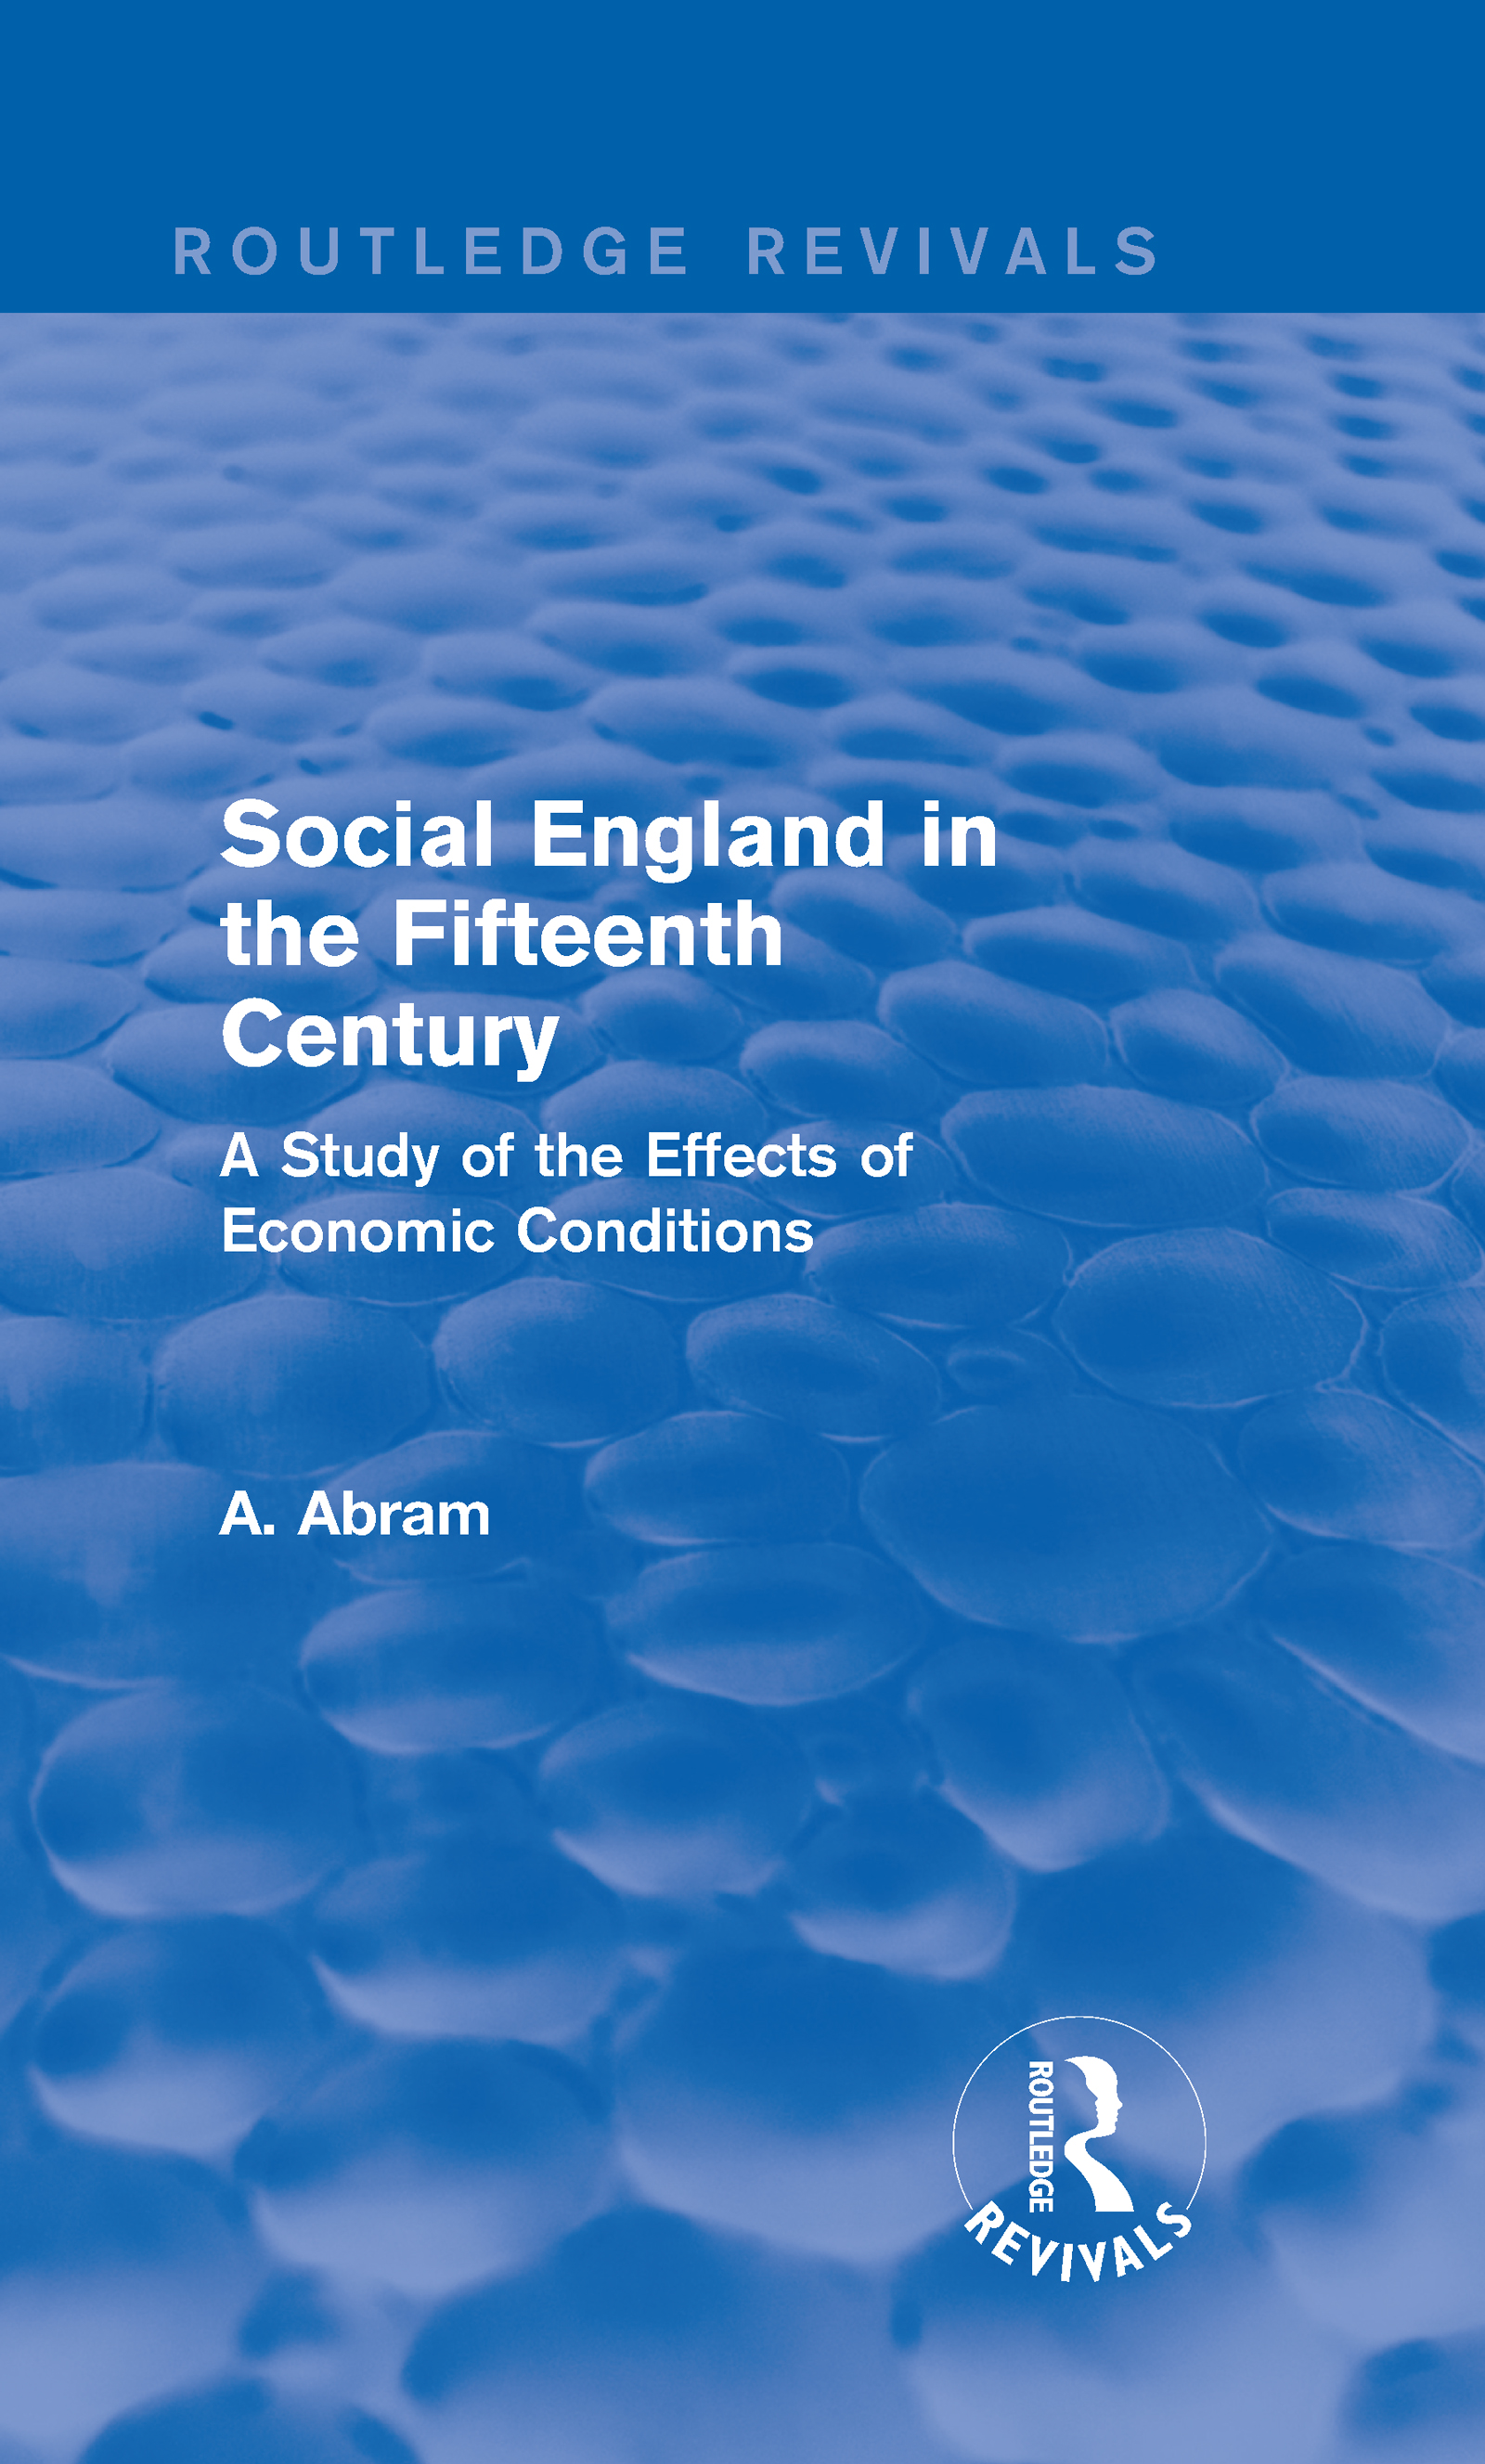 Social England in the Fifteenth Century (Routledge Revivals): A Study of the Effects of Economic Conditions, 1st Edition (Hardback) book cover